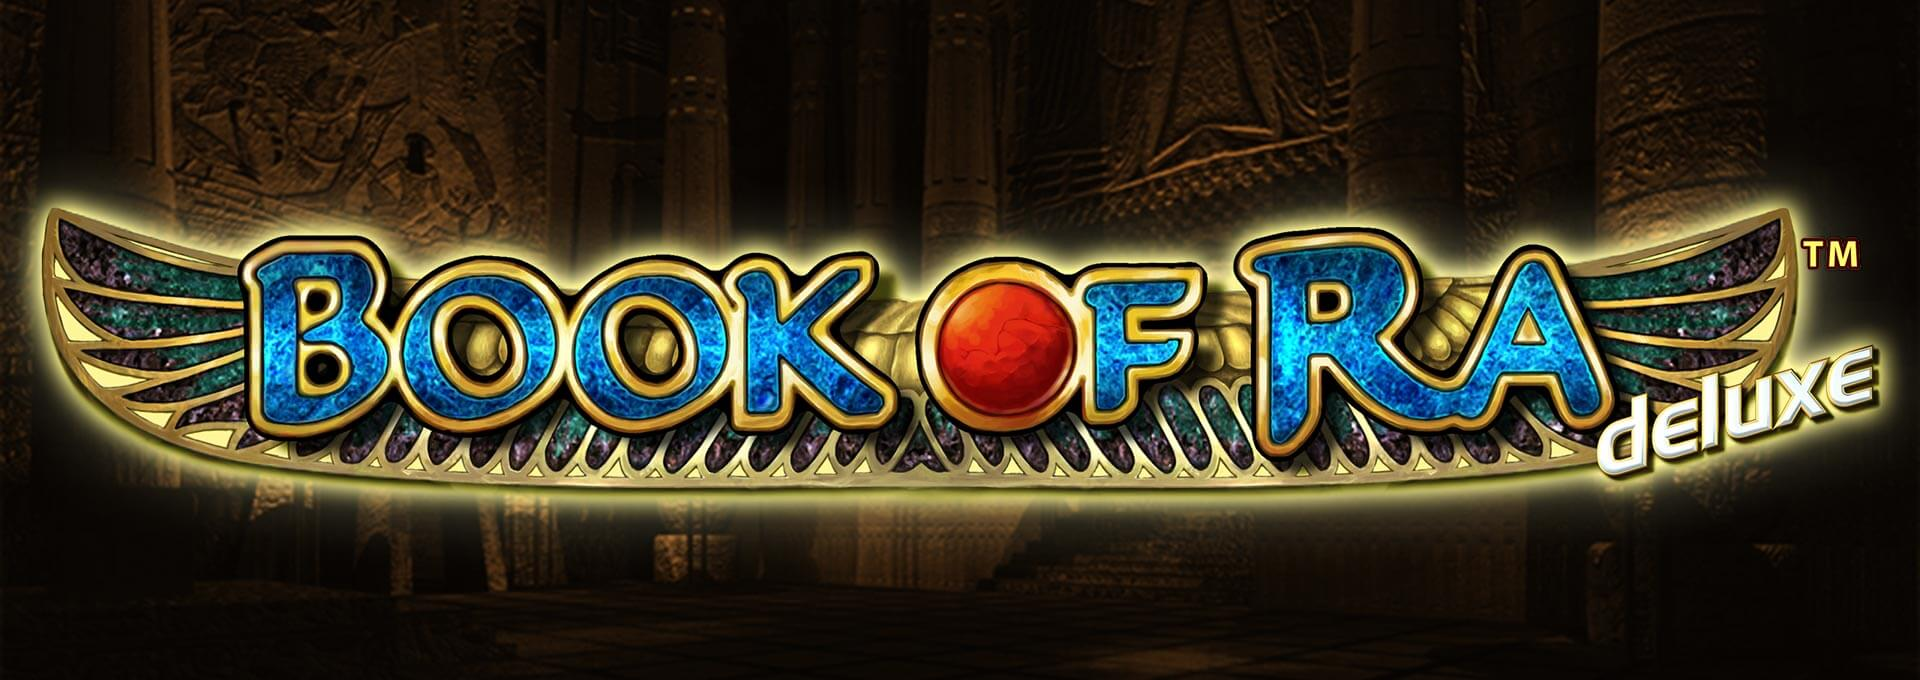 casino play online casino book of ra